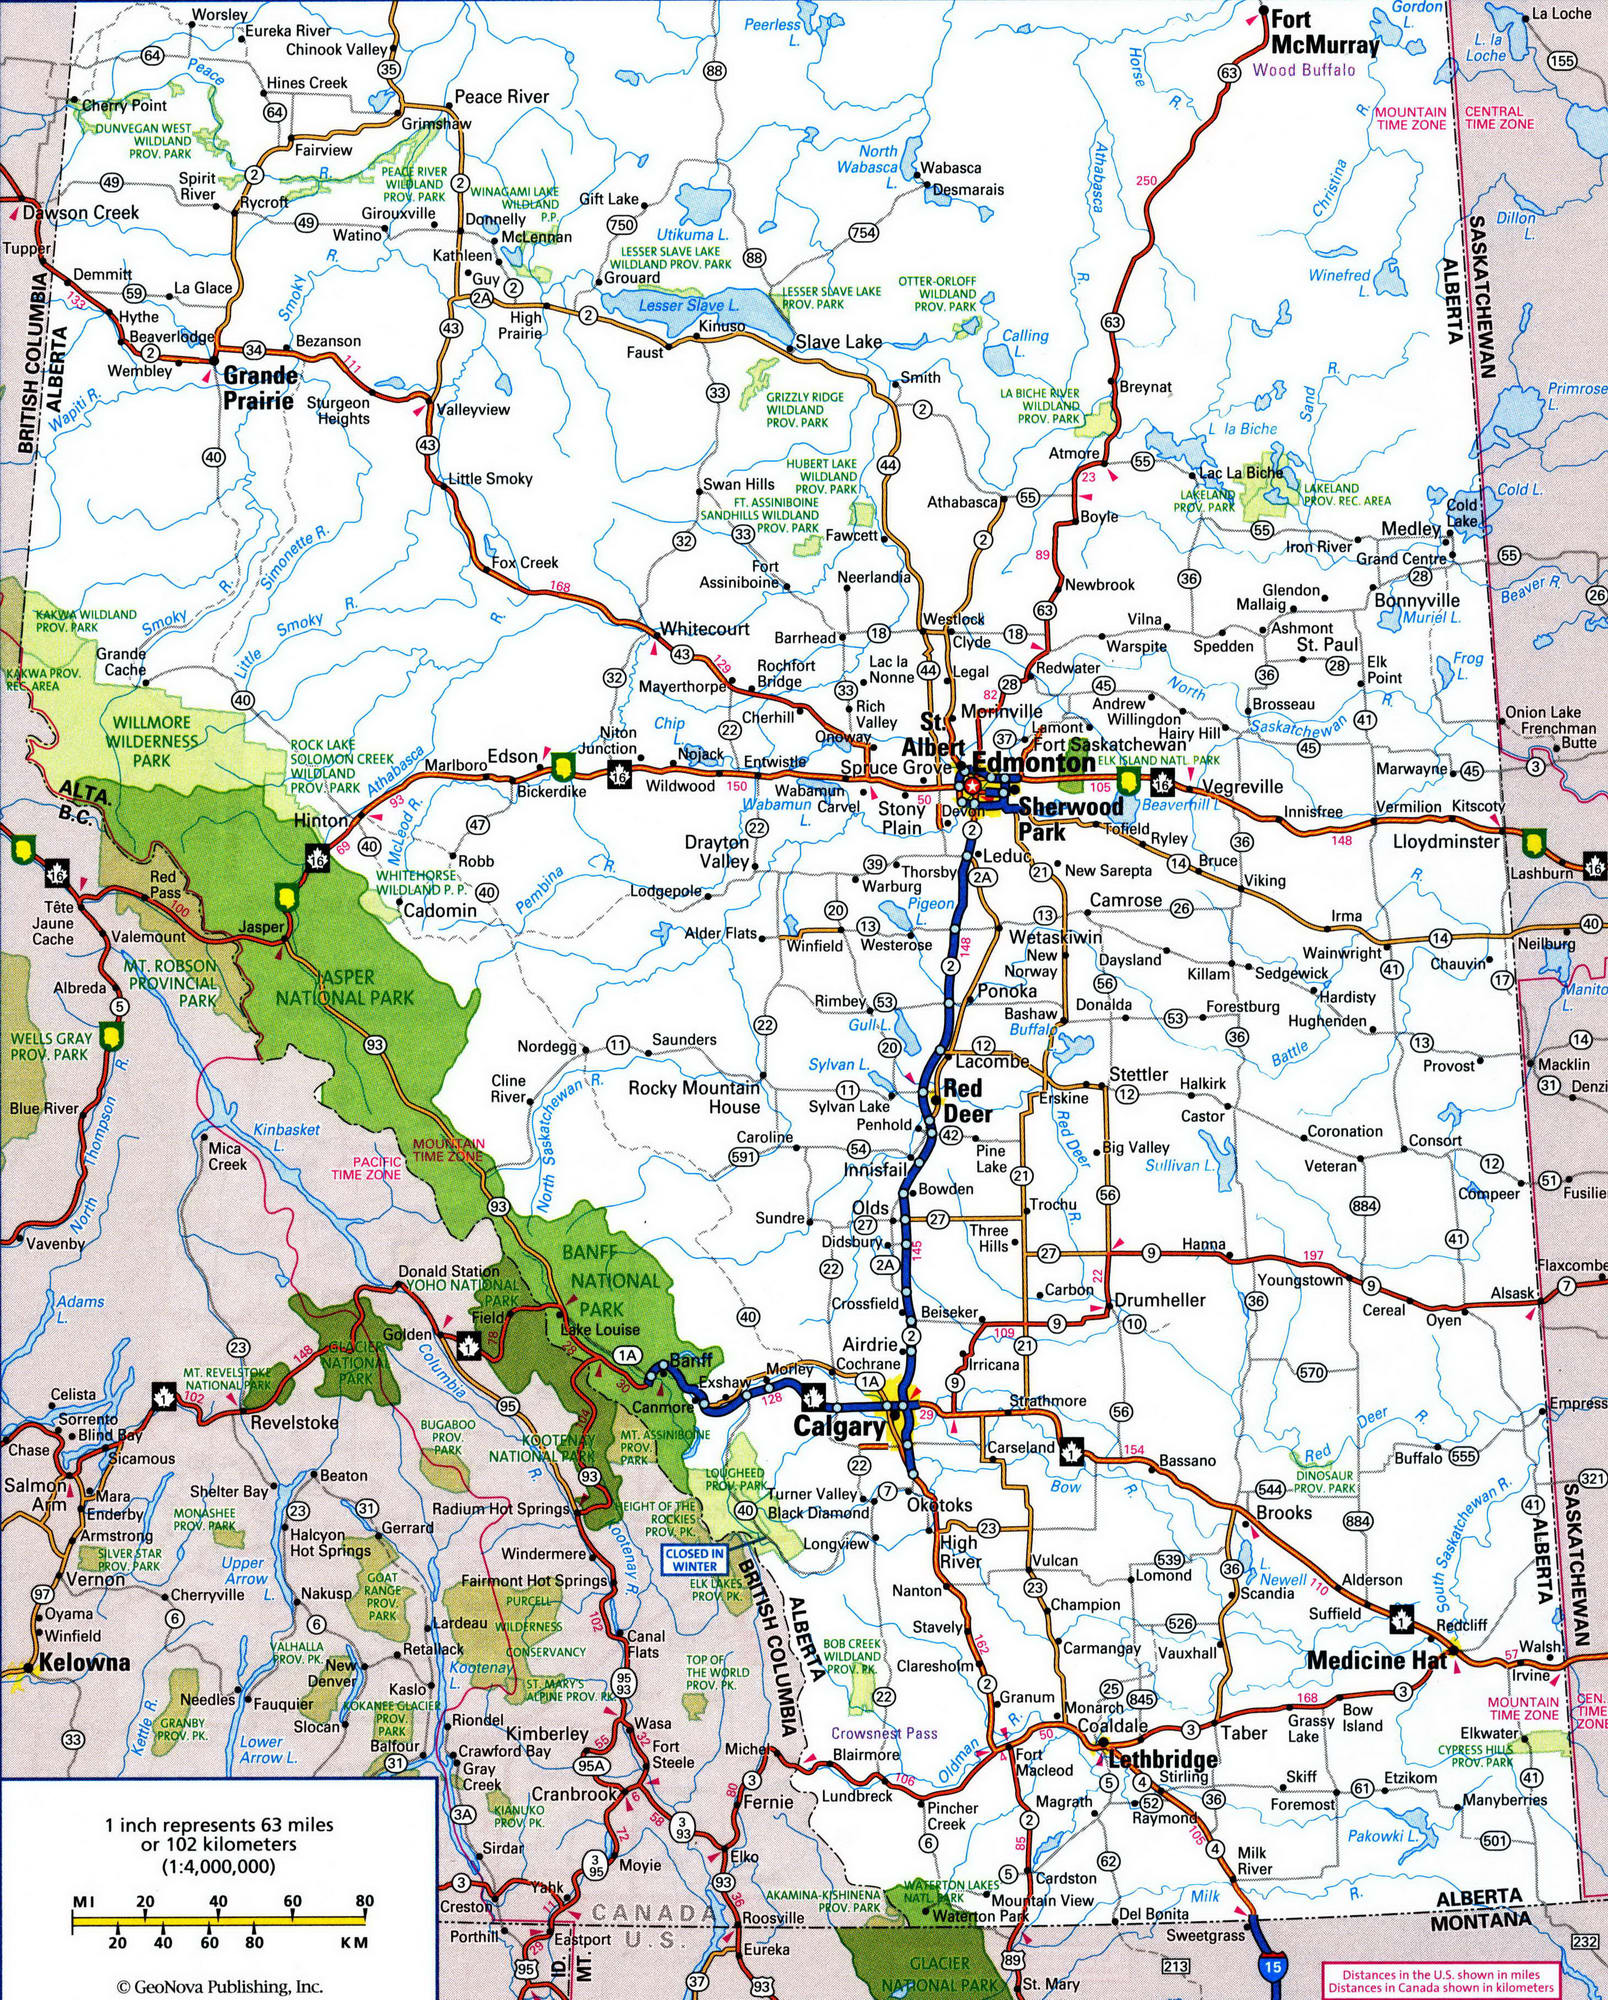 Detailed Road Map Of Alberta Canada Willmore Wilderness Park, Rocky Mountains, Alberta, Canada